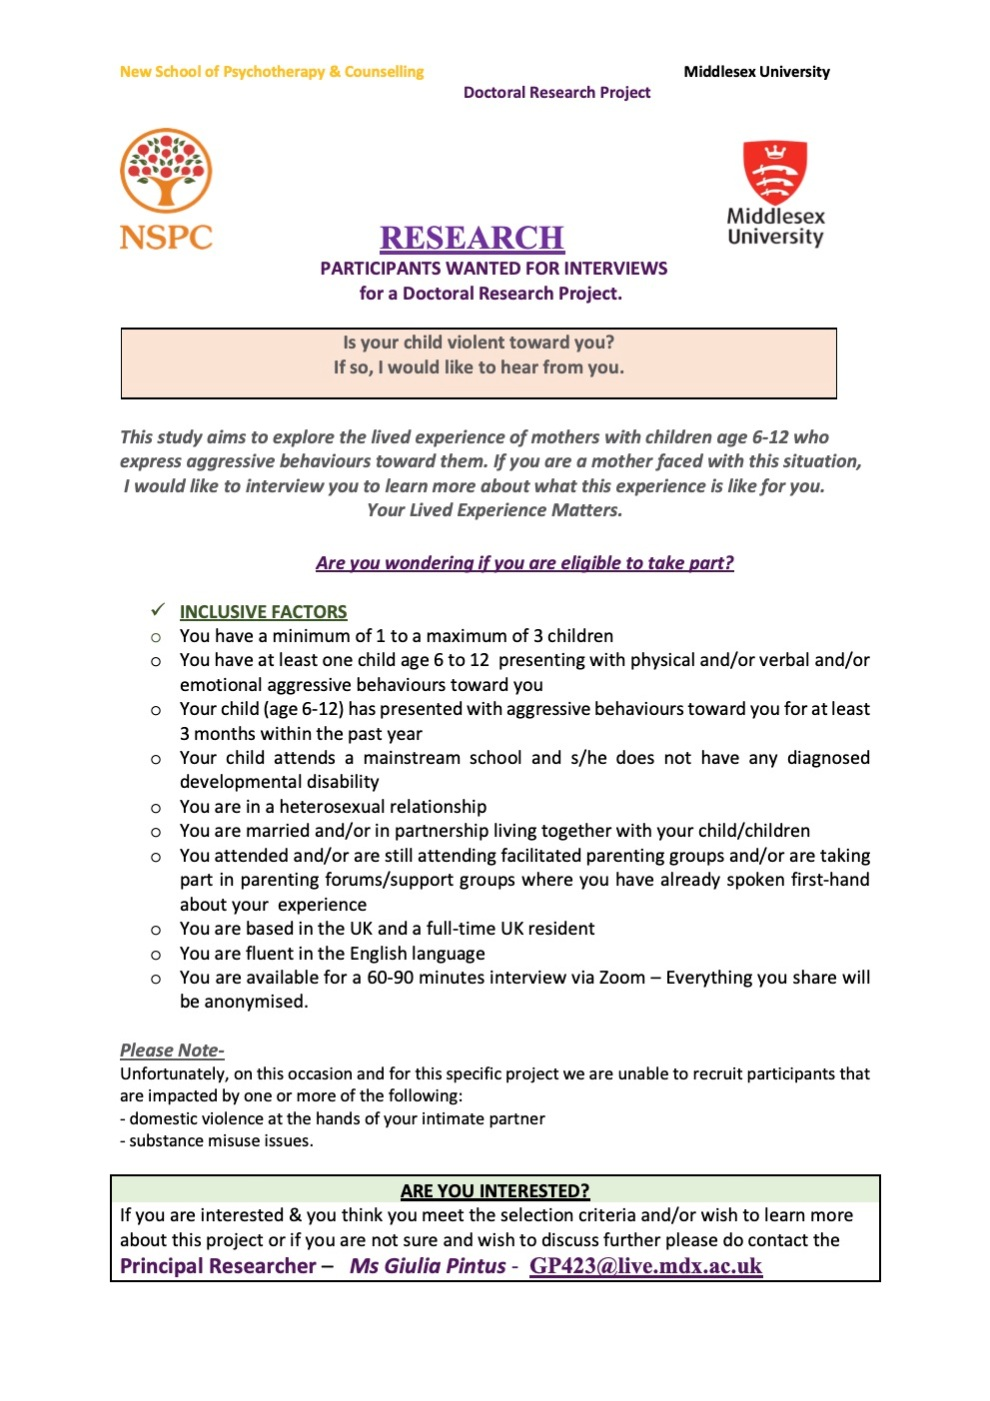 Giulia's RESEARCH - CPVA project -2021- NSPC+Middlesex University